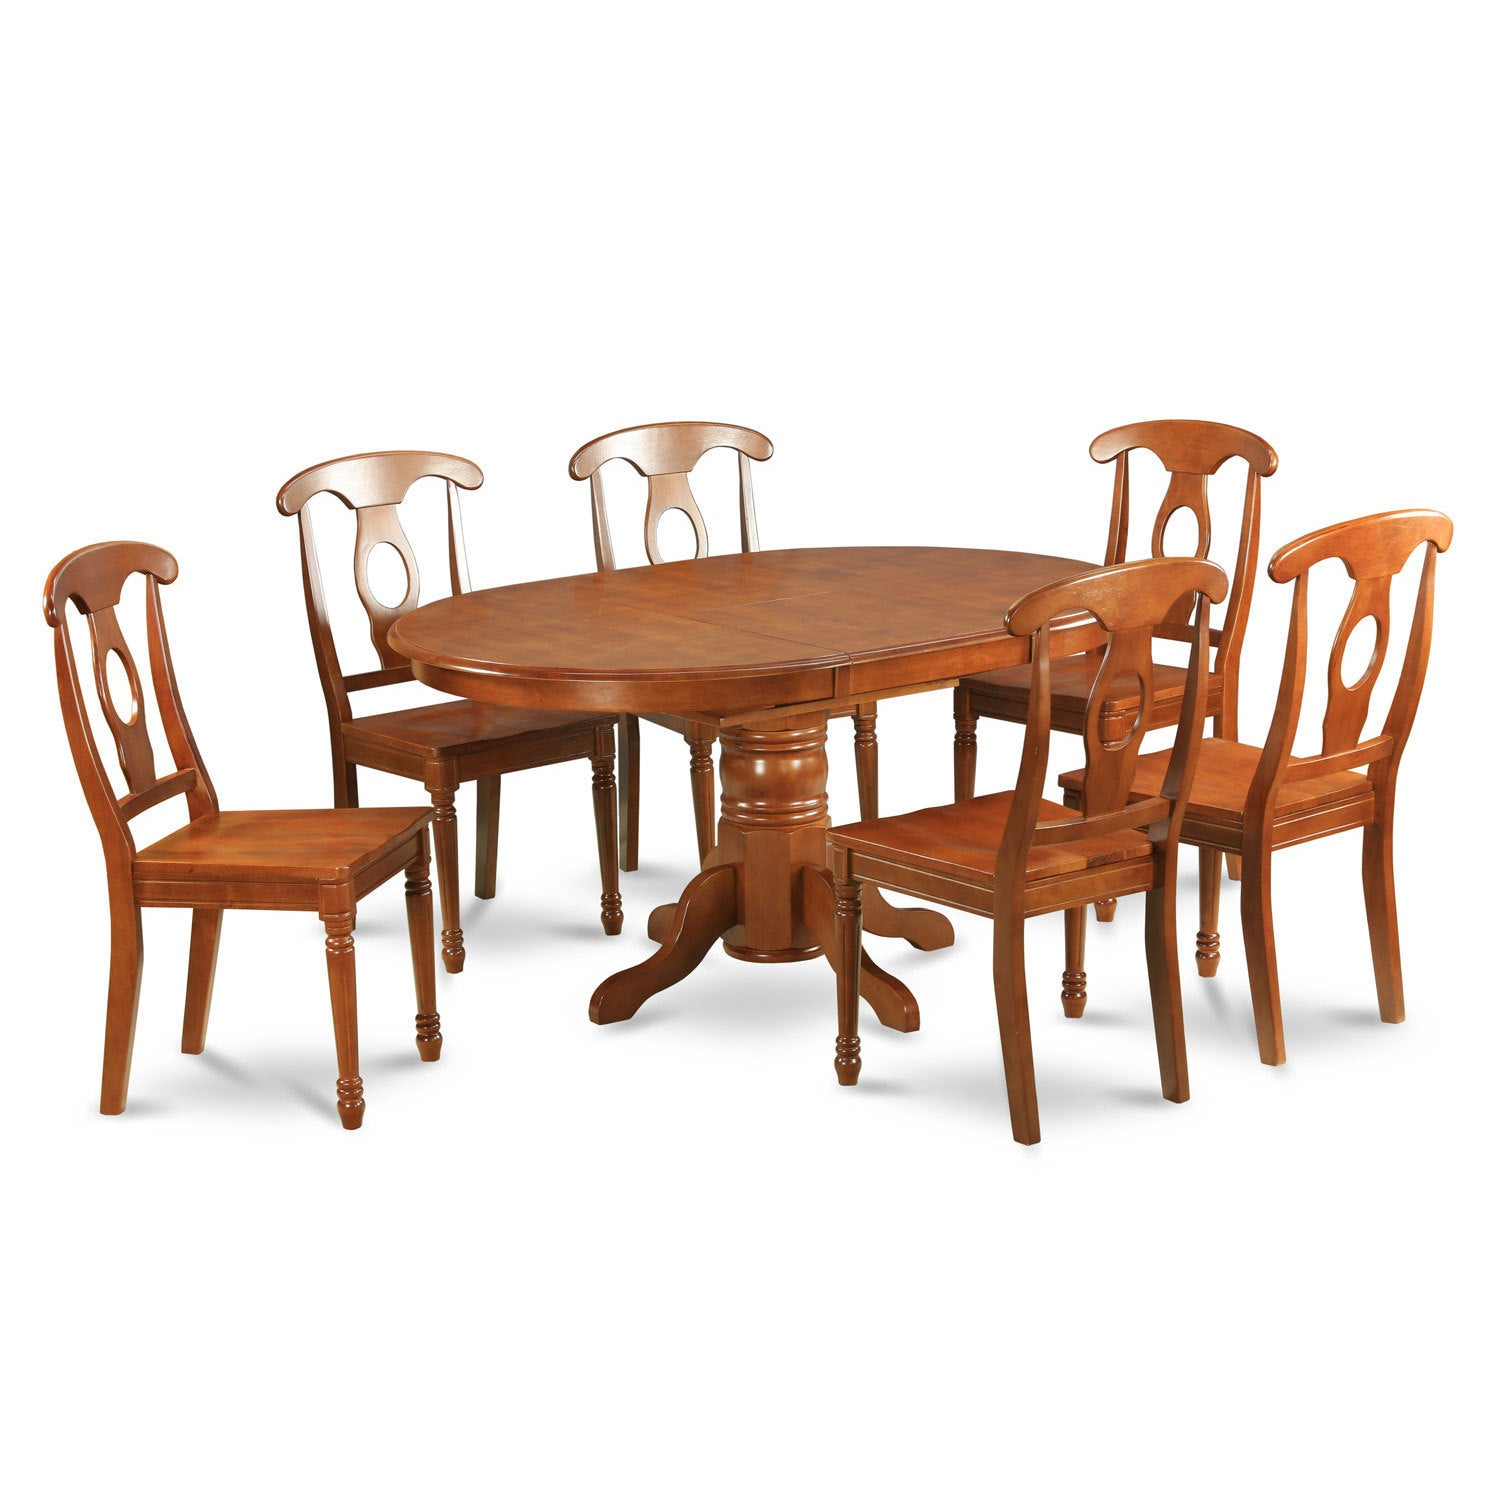 5 PC Dining Set-dining Table Having Leaf and 4 Kitchen Chairs ...